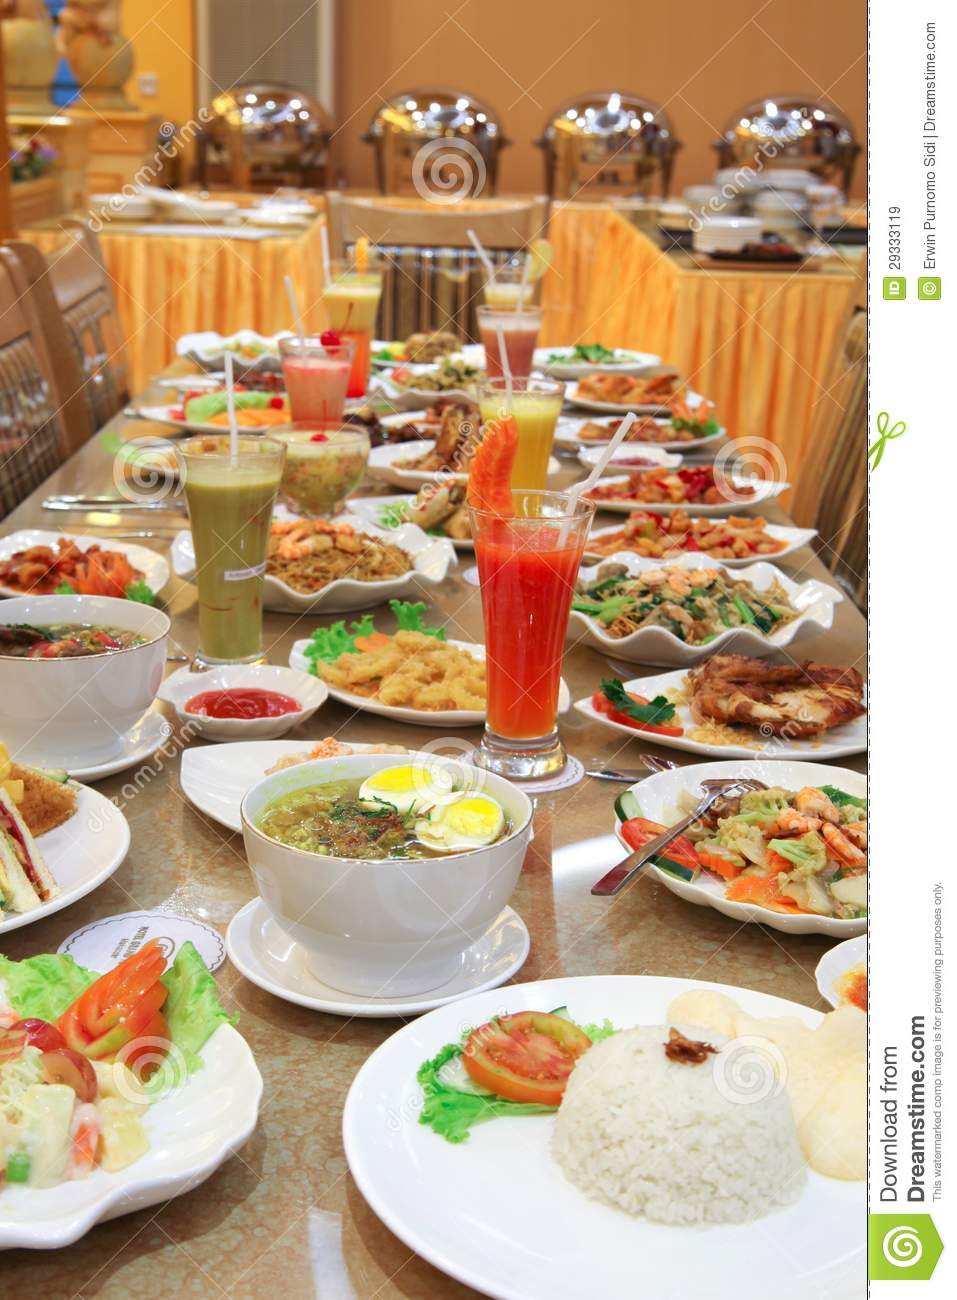 A lot of food on the table royalty free stock images for Table snack cuisine